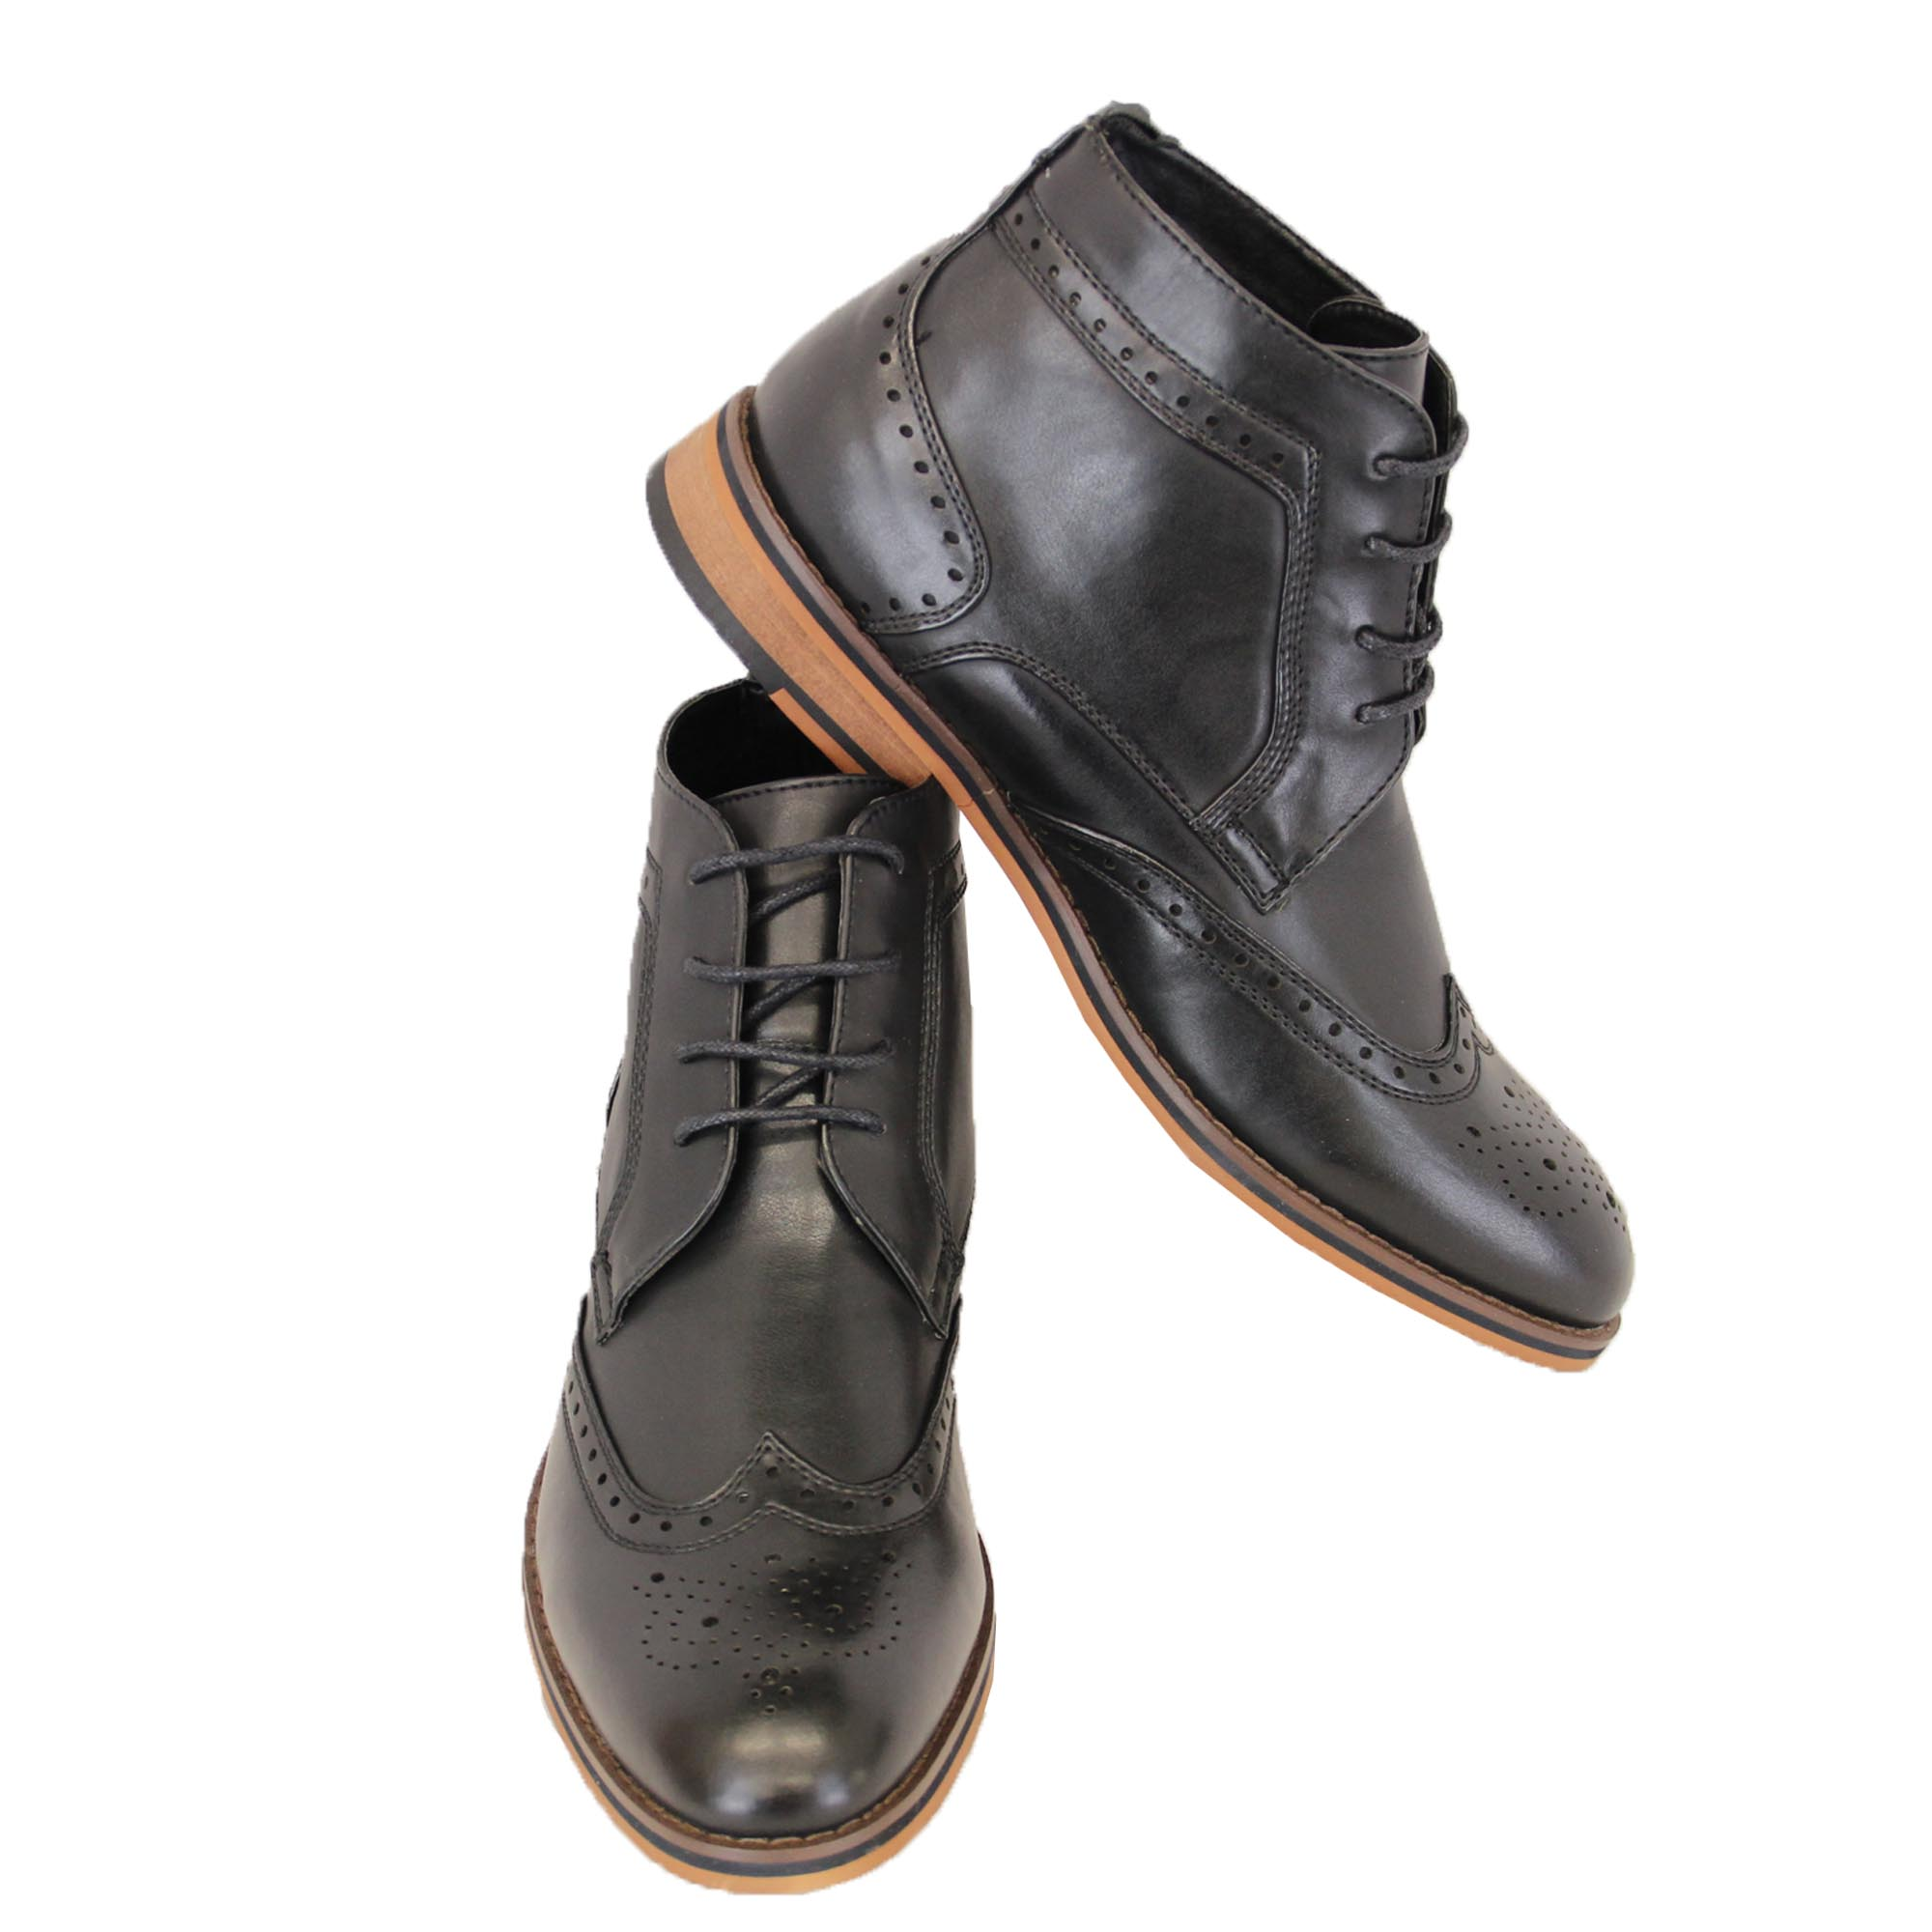 mens boots voeut brogue chelsea dealer shoes high ankle